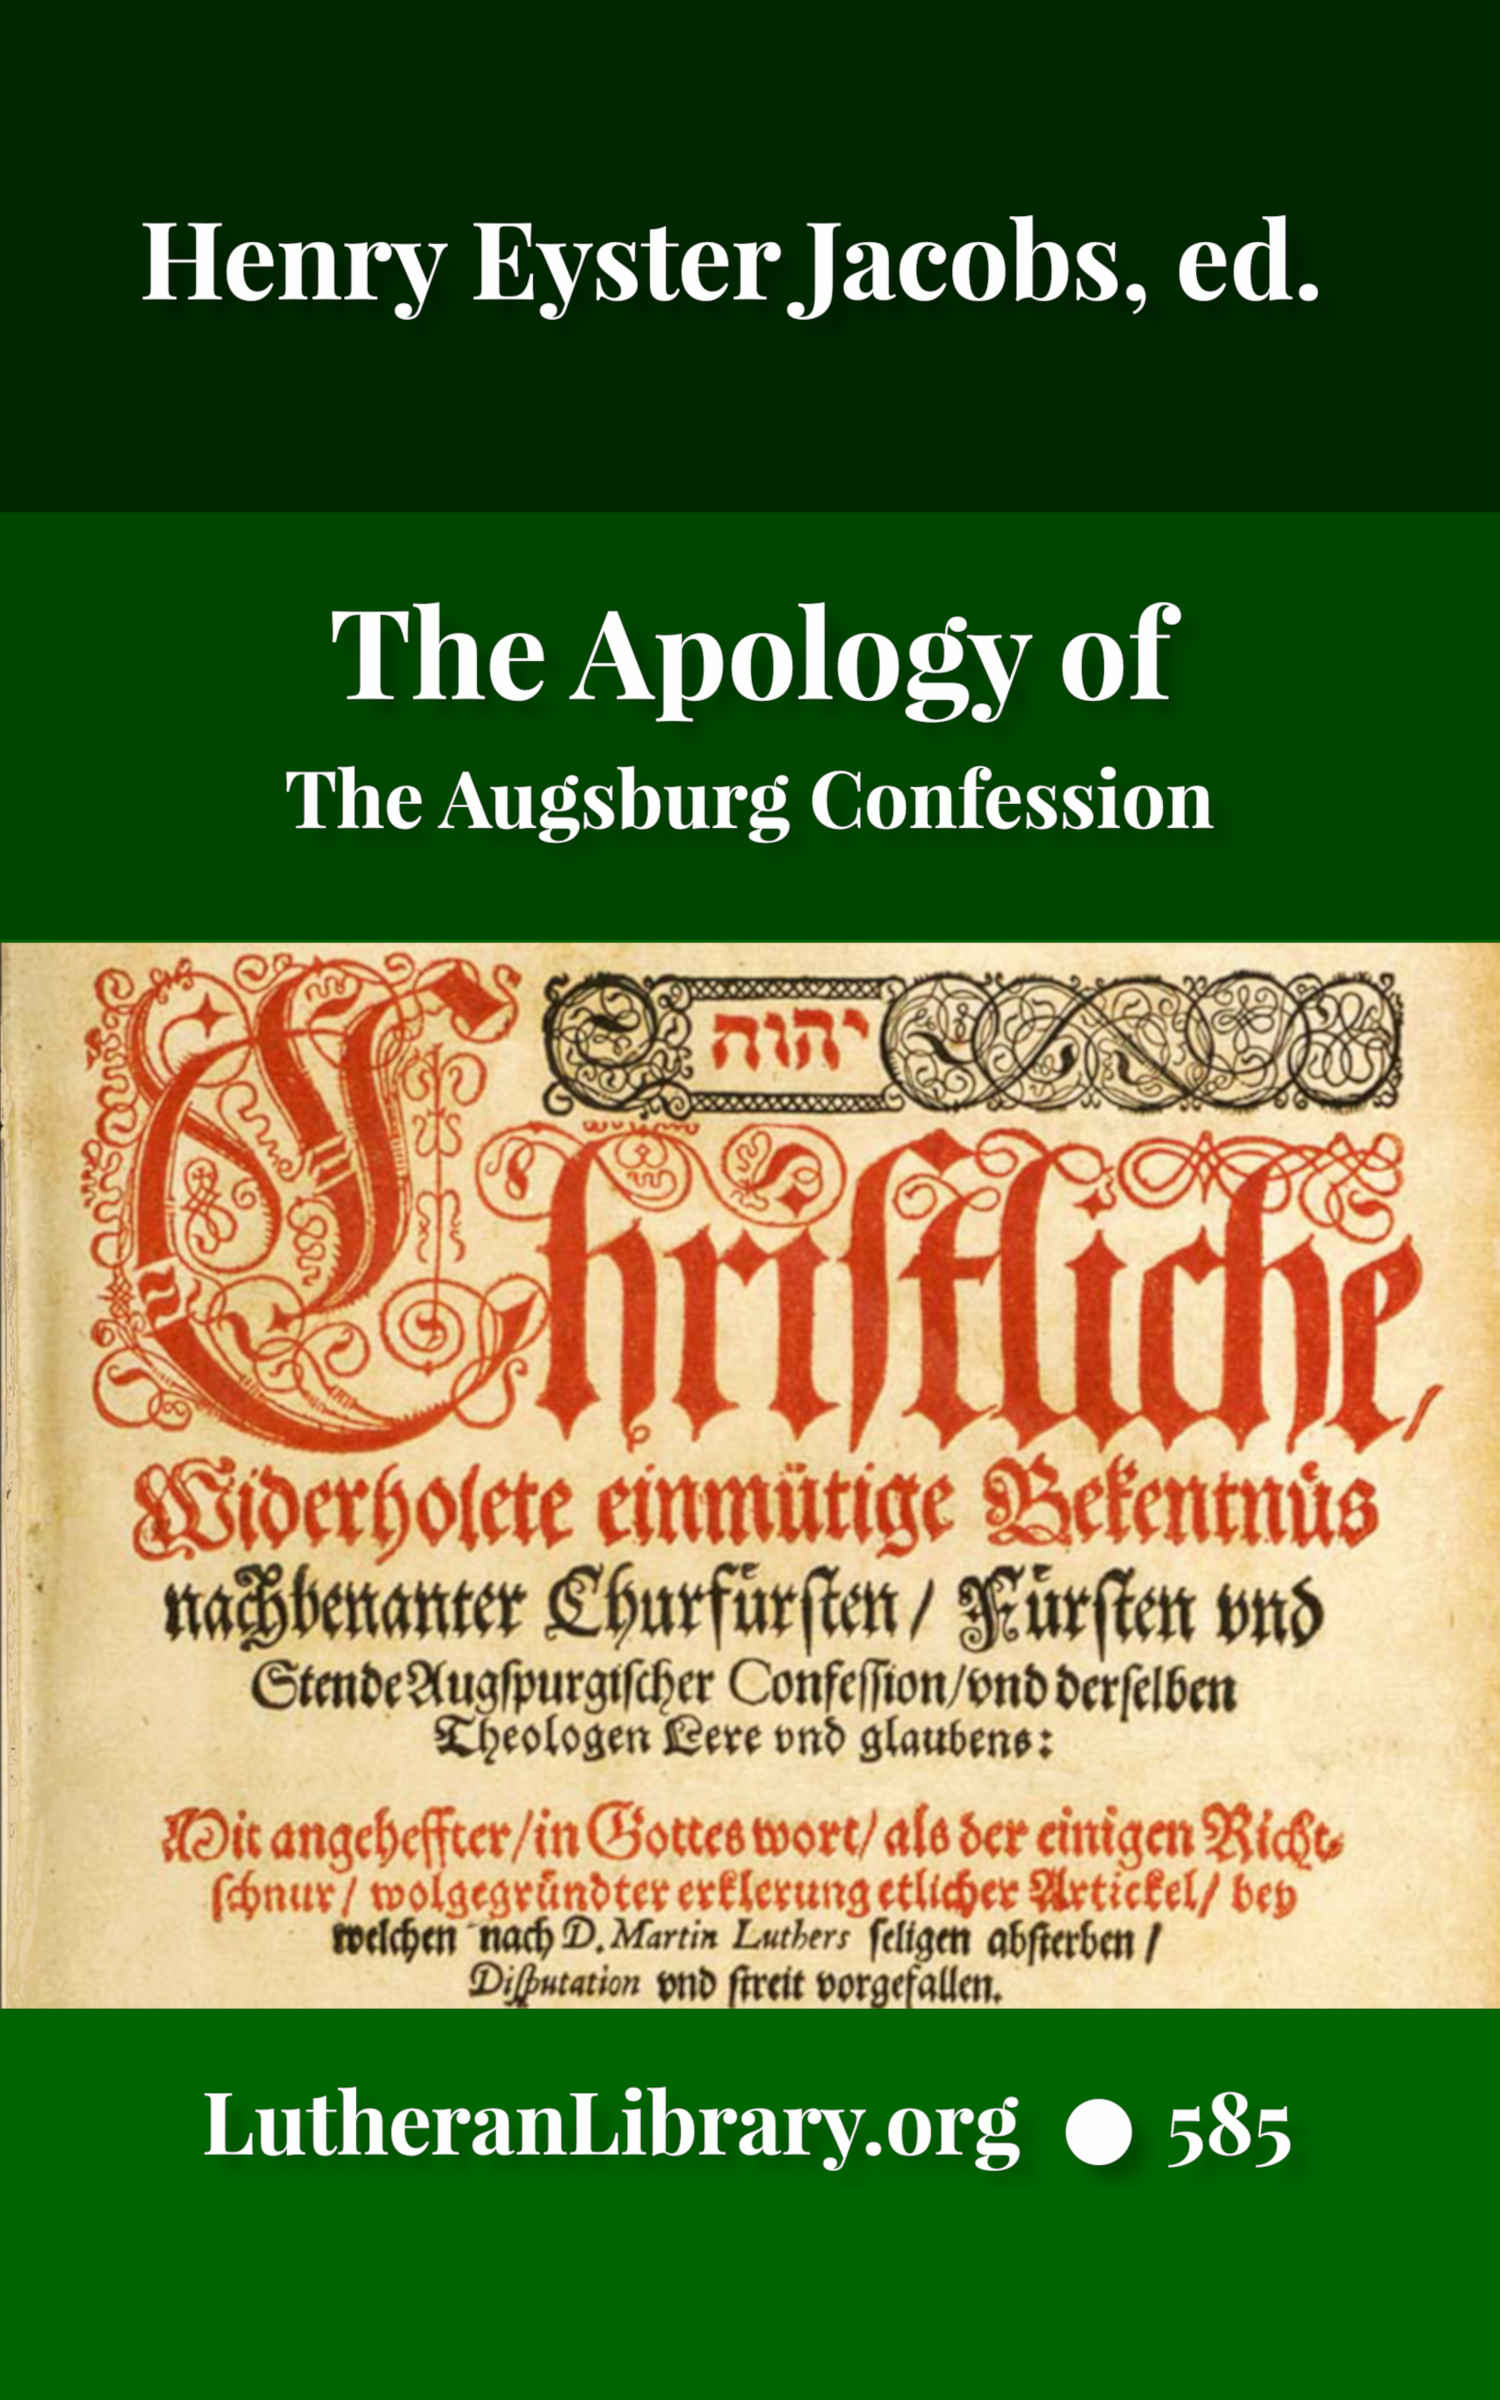 The Apology of The Augsburg Confession by Philip Melanchthon